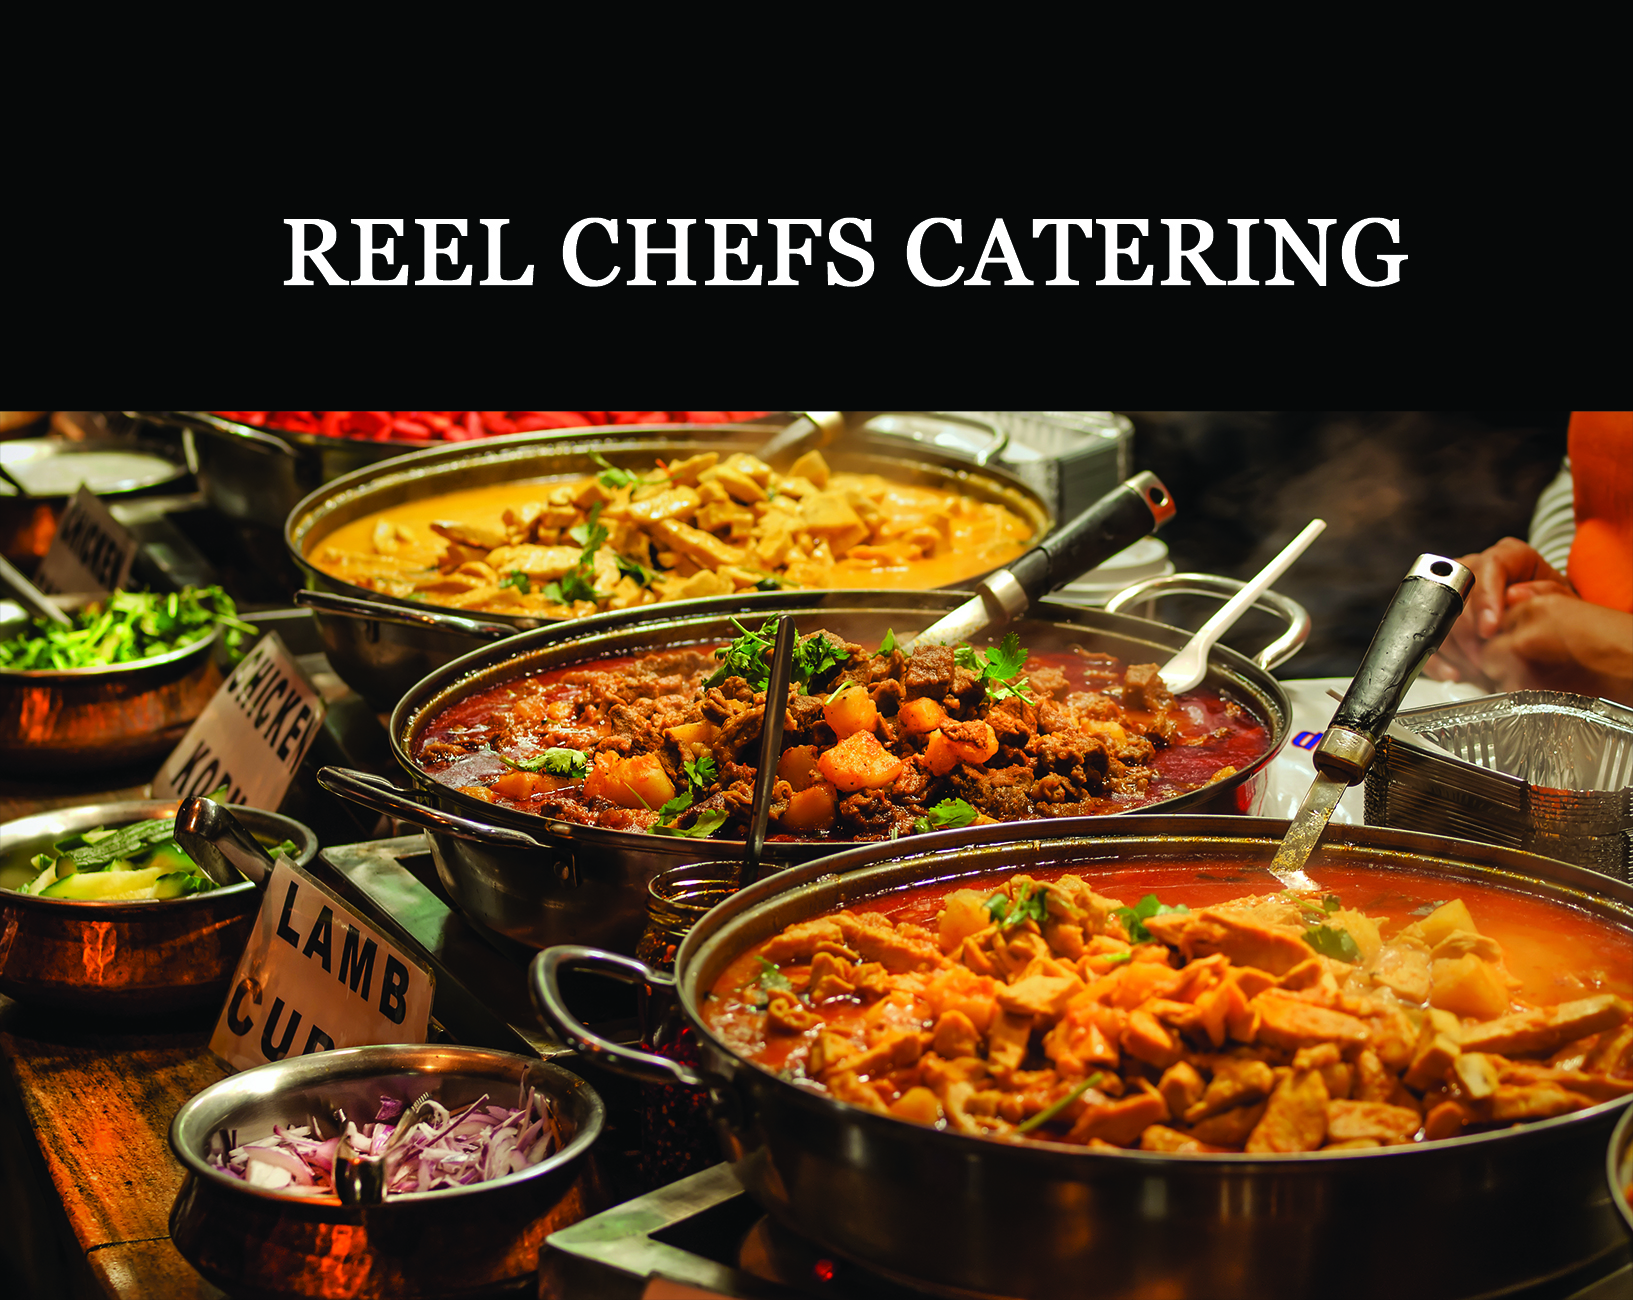 Reel Chefs Catering